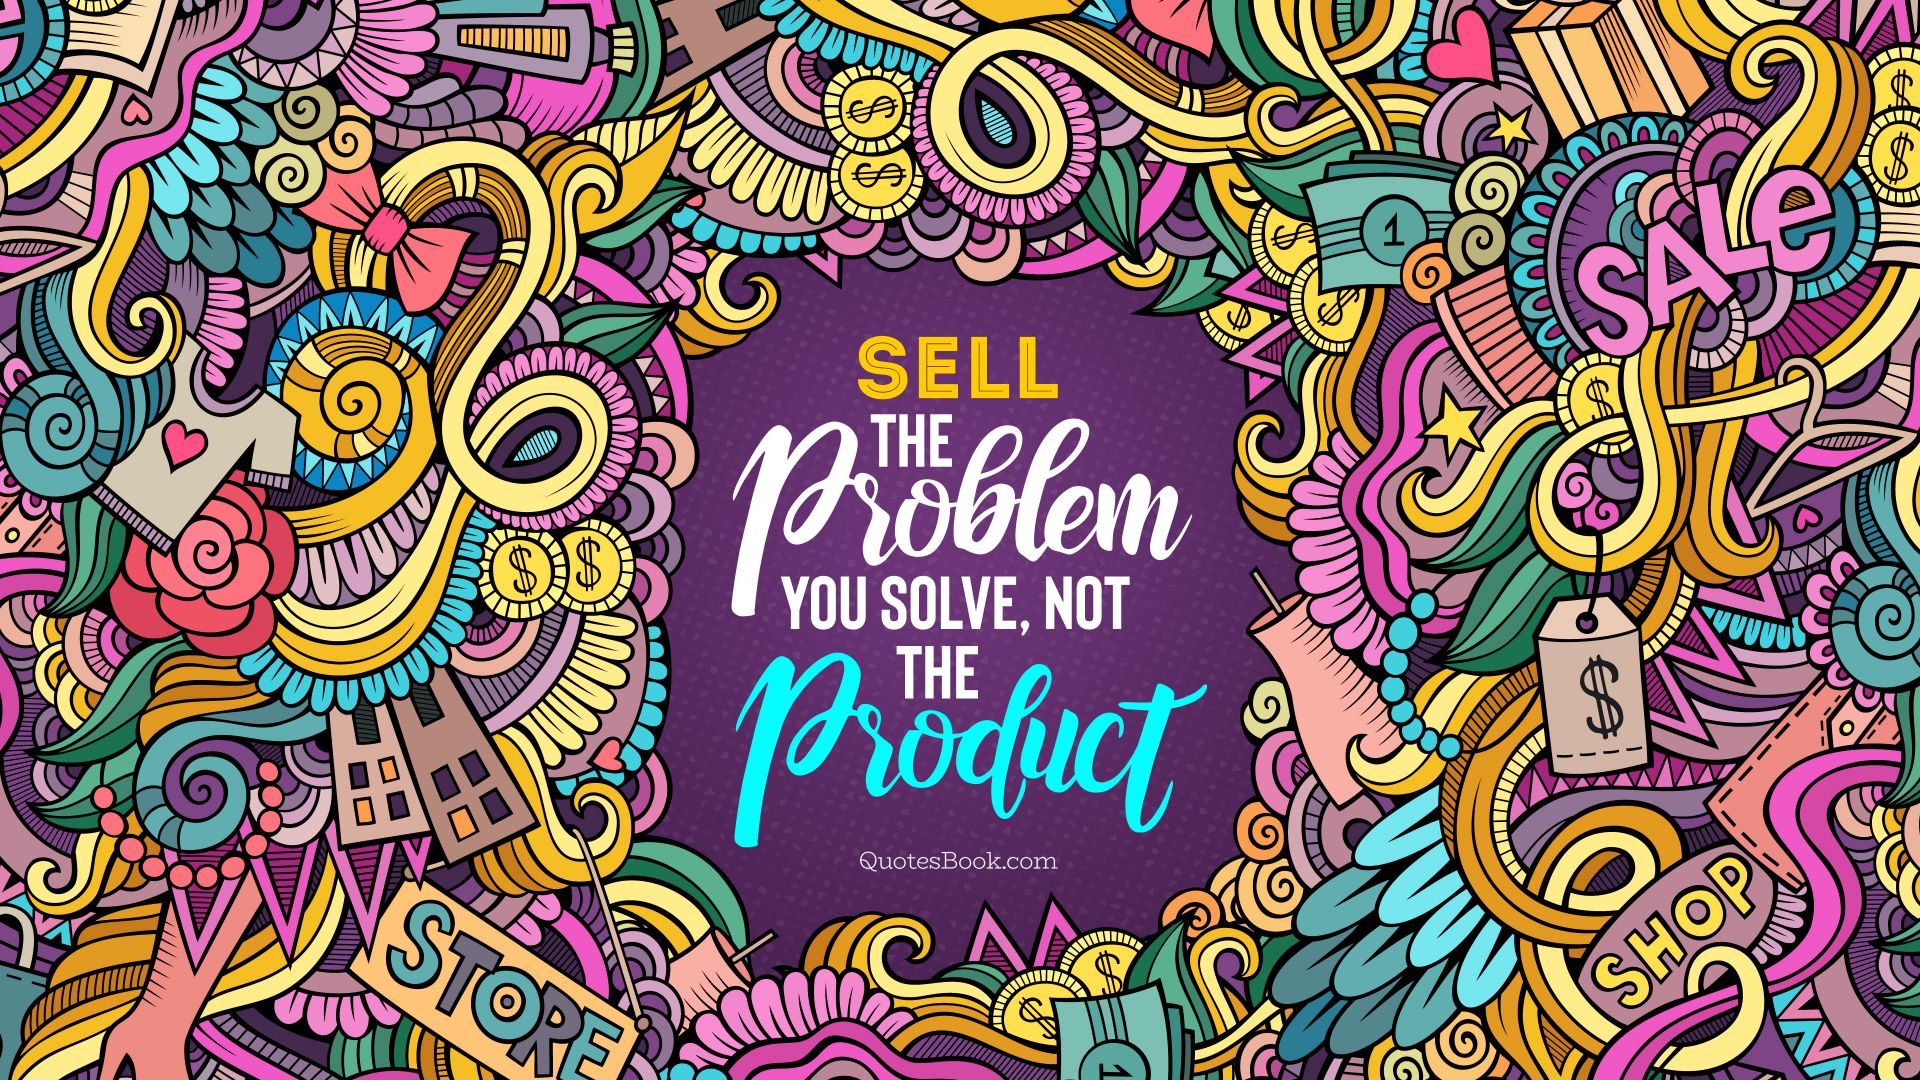 Sell the problem you solve, not the product